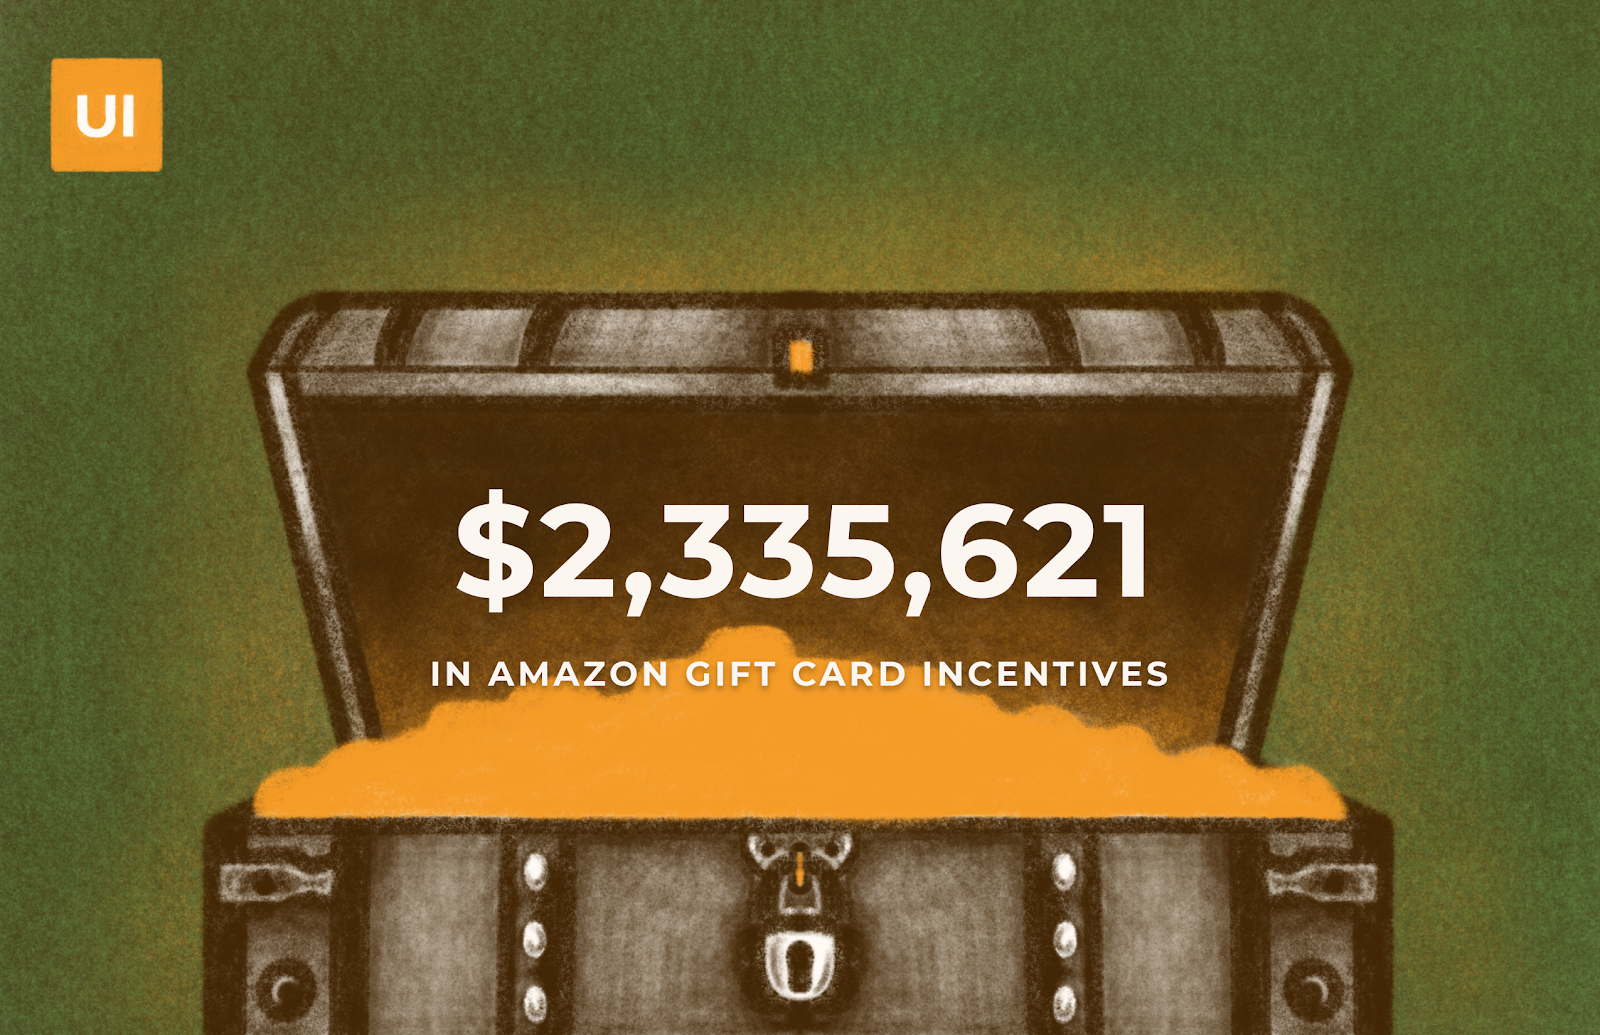 Open treasure chest illustration with statistic about Amazon gift card incentives distributed by UX researchers.